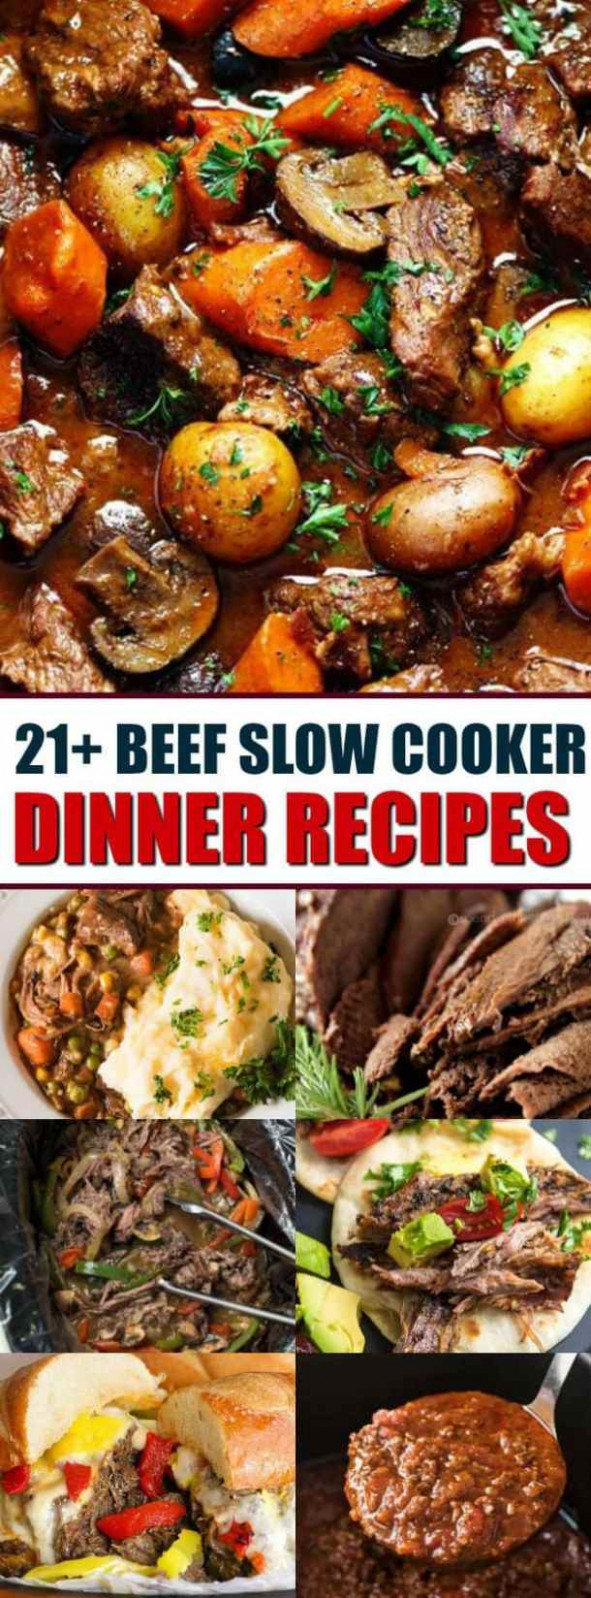 The Best Slow Cooker Beef Dinner Recipes - The Best Blog ...